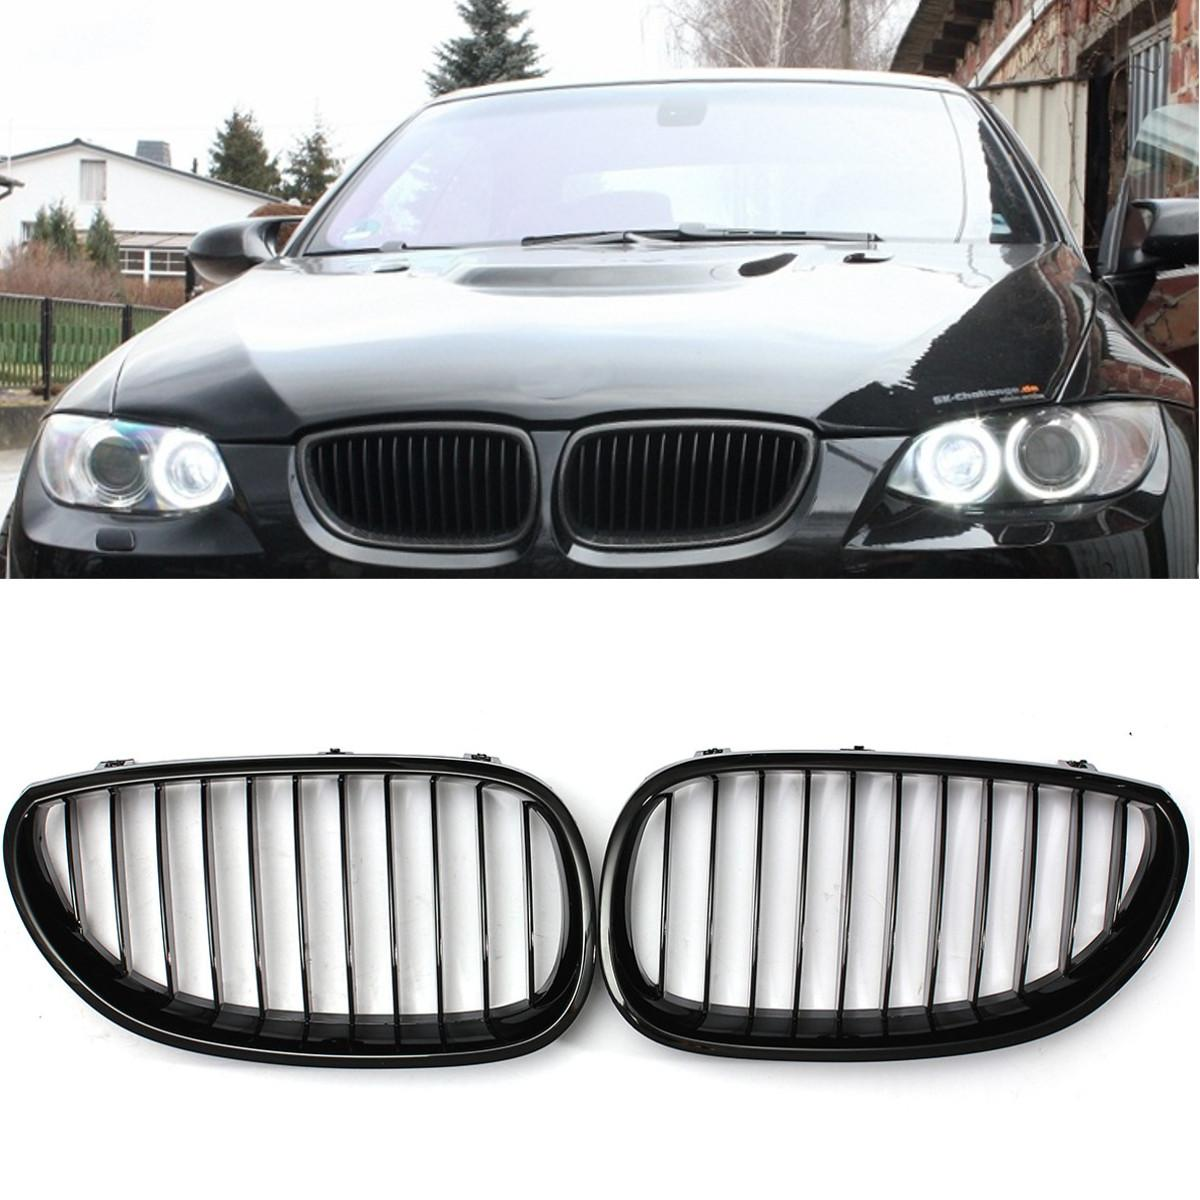 Air Intake Gloss Black Kidney Grille Grill For BMW E60 E61 5-Series 2003-2010 ^